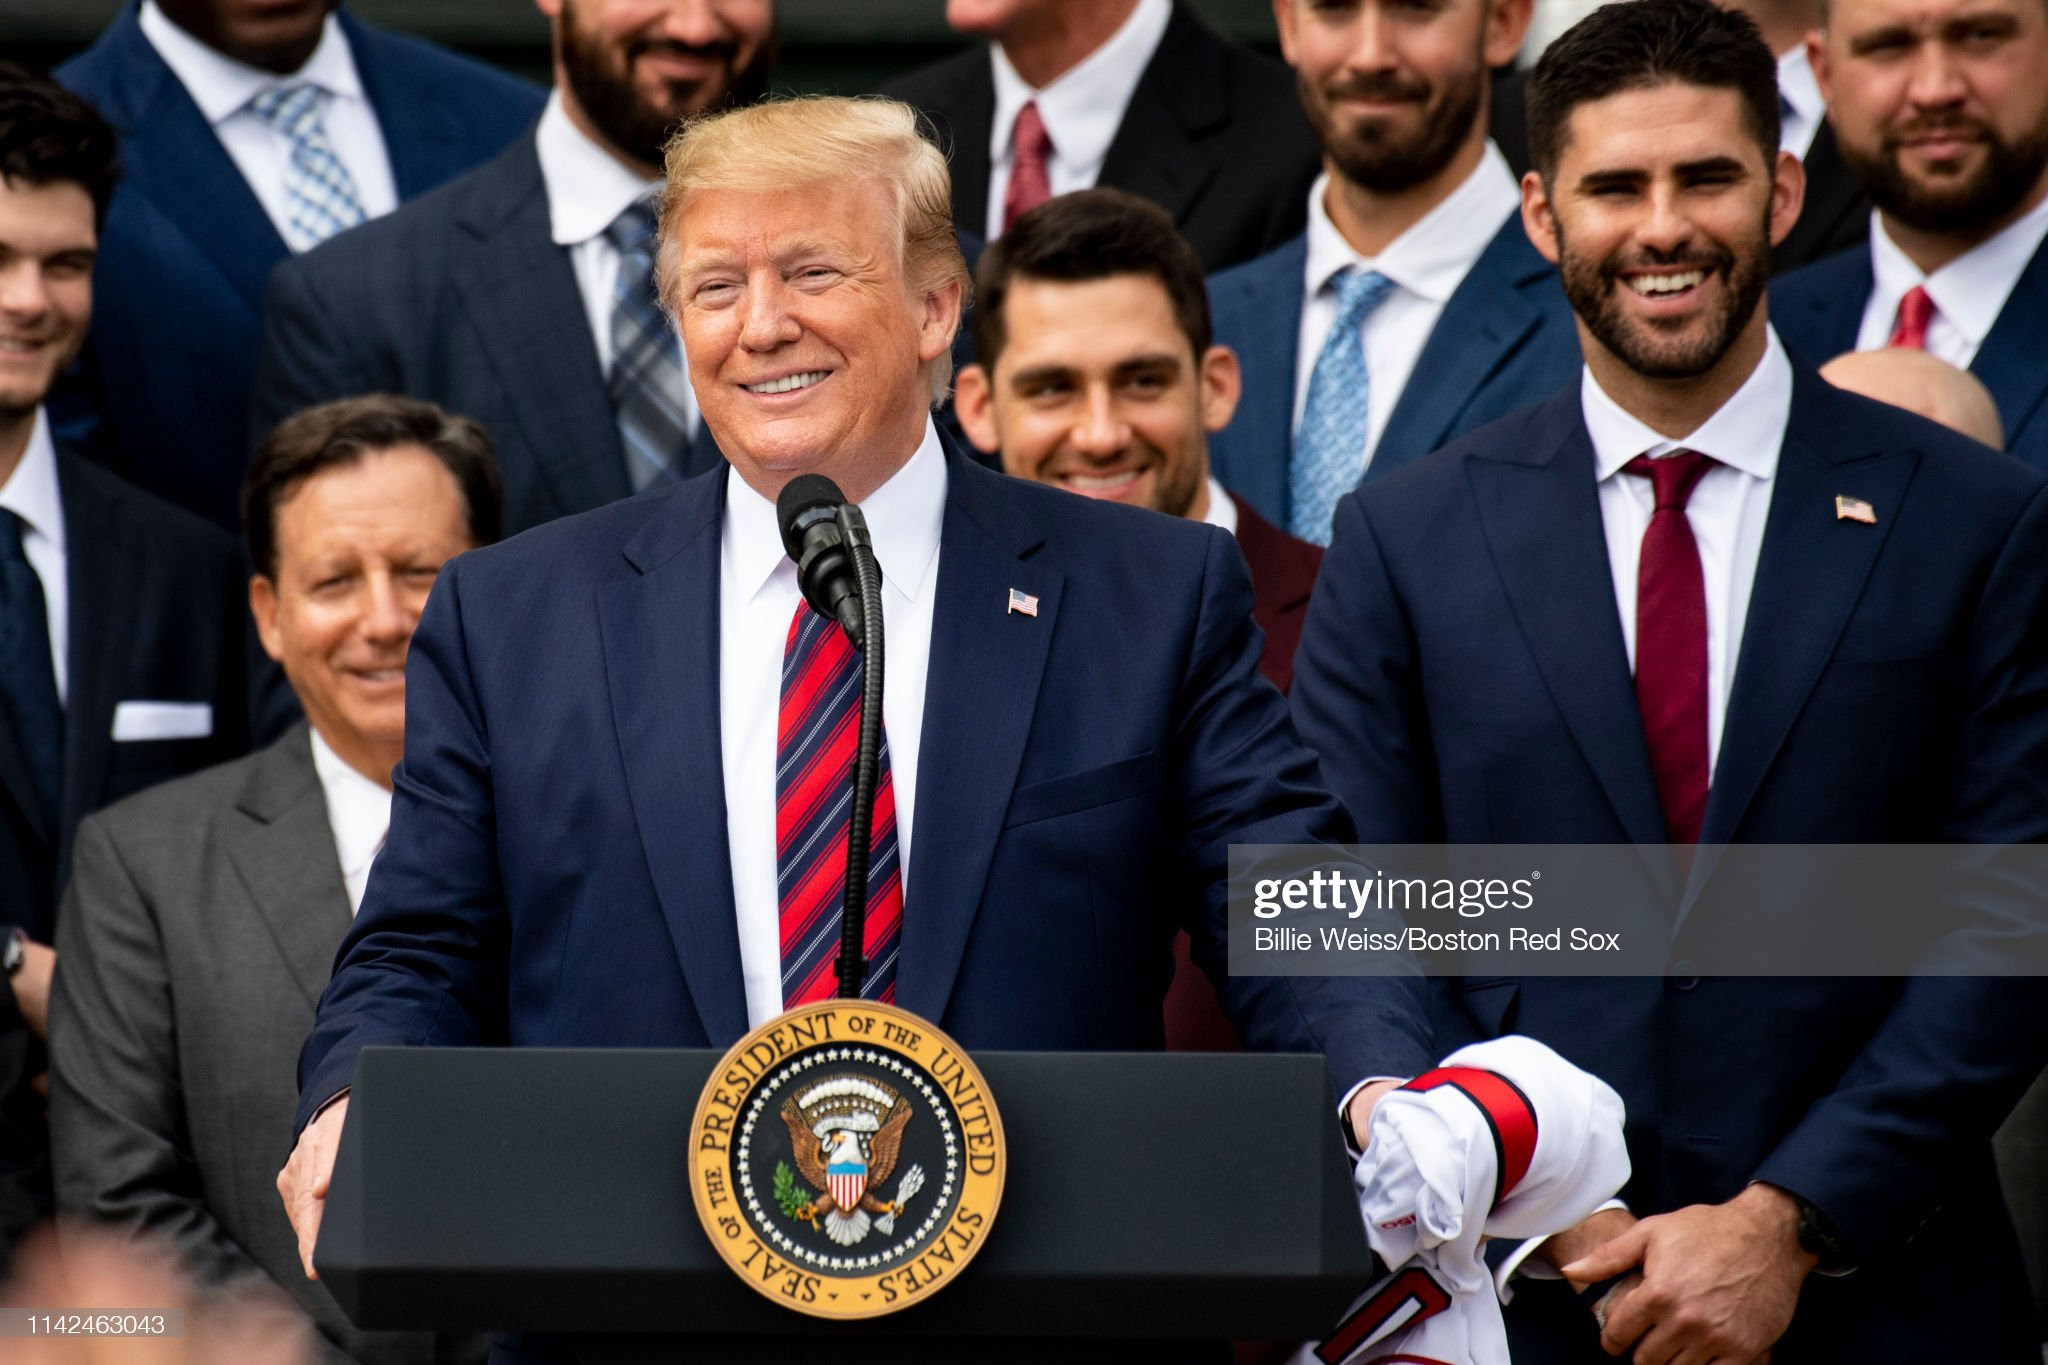 President Trump Hosts 2018 World Series Champion Boston Red Sox At White House : News Photo